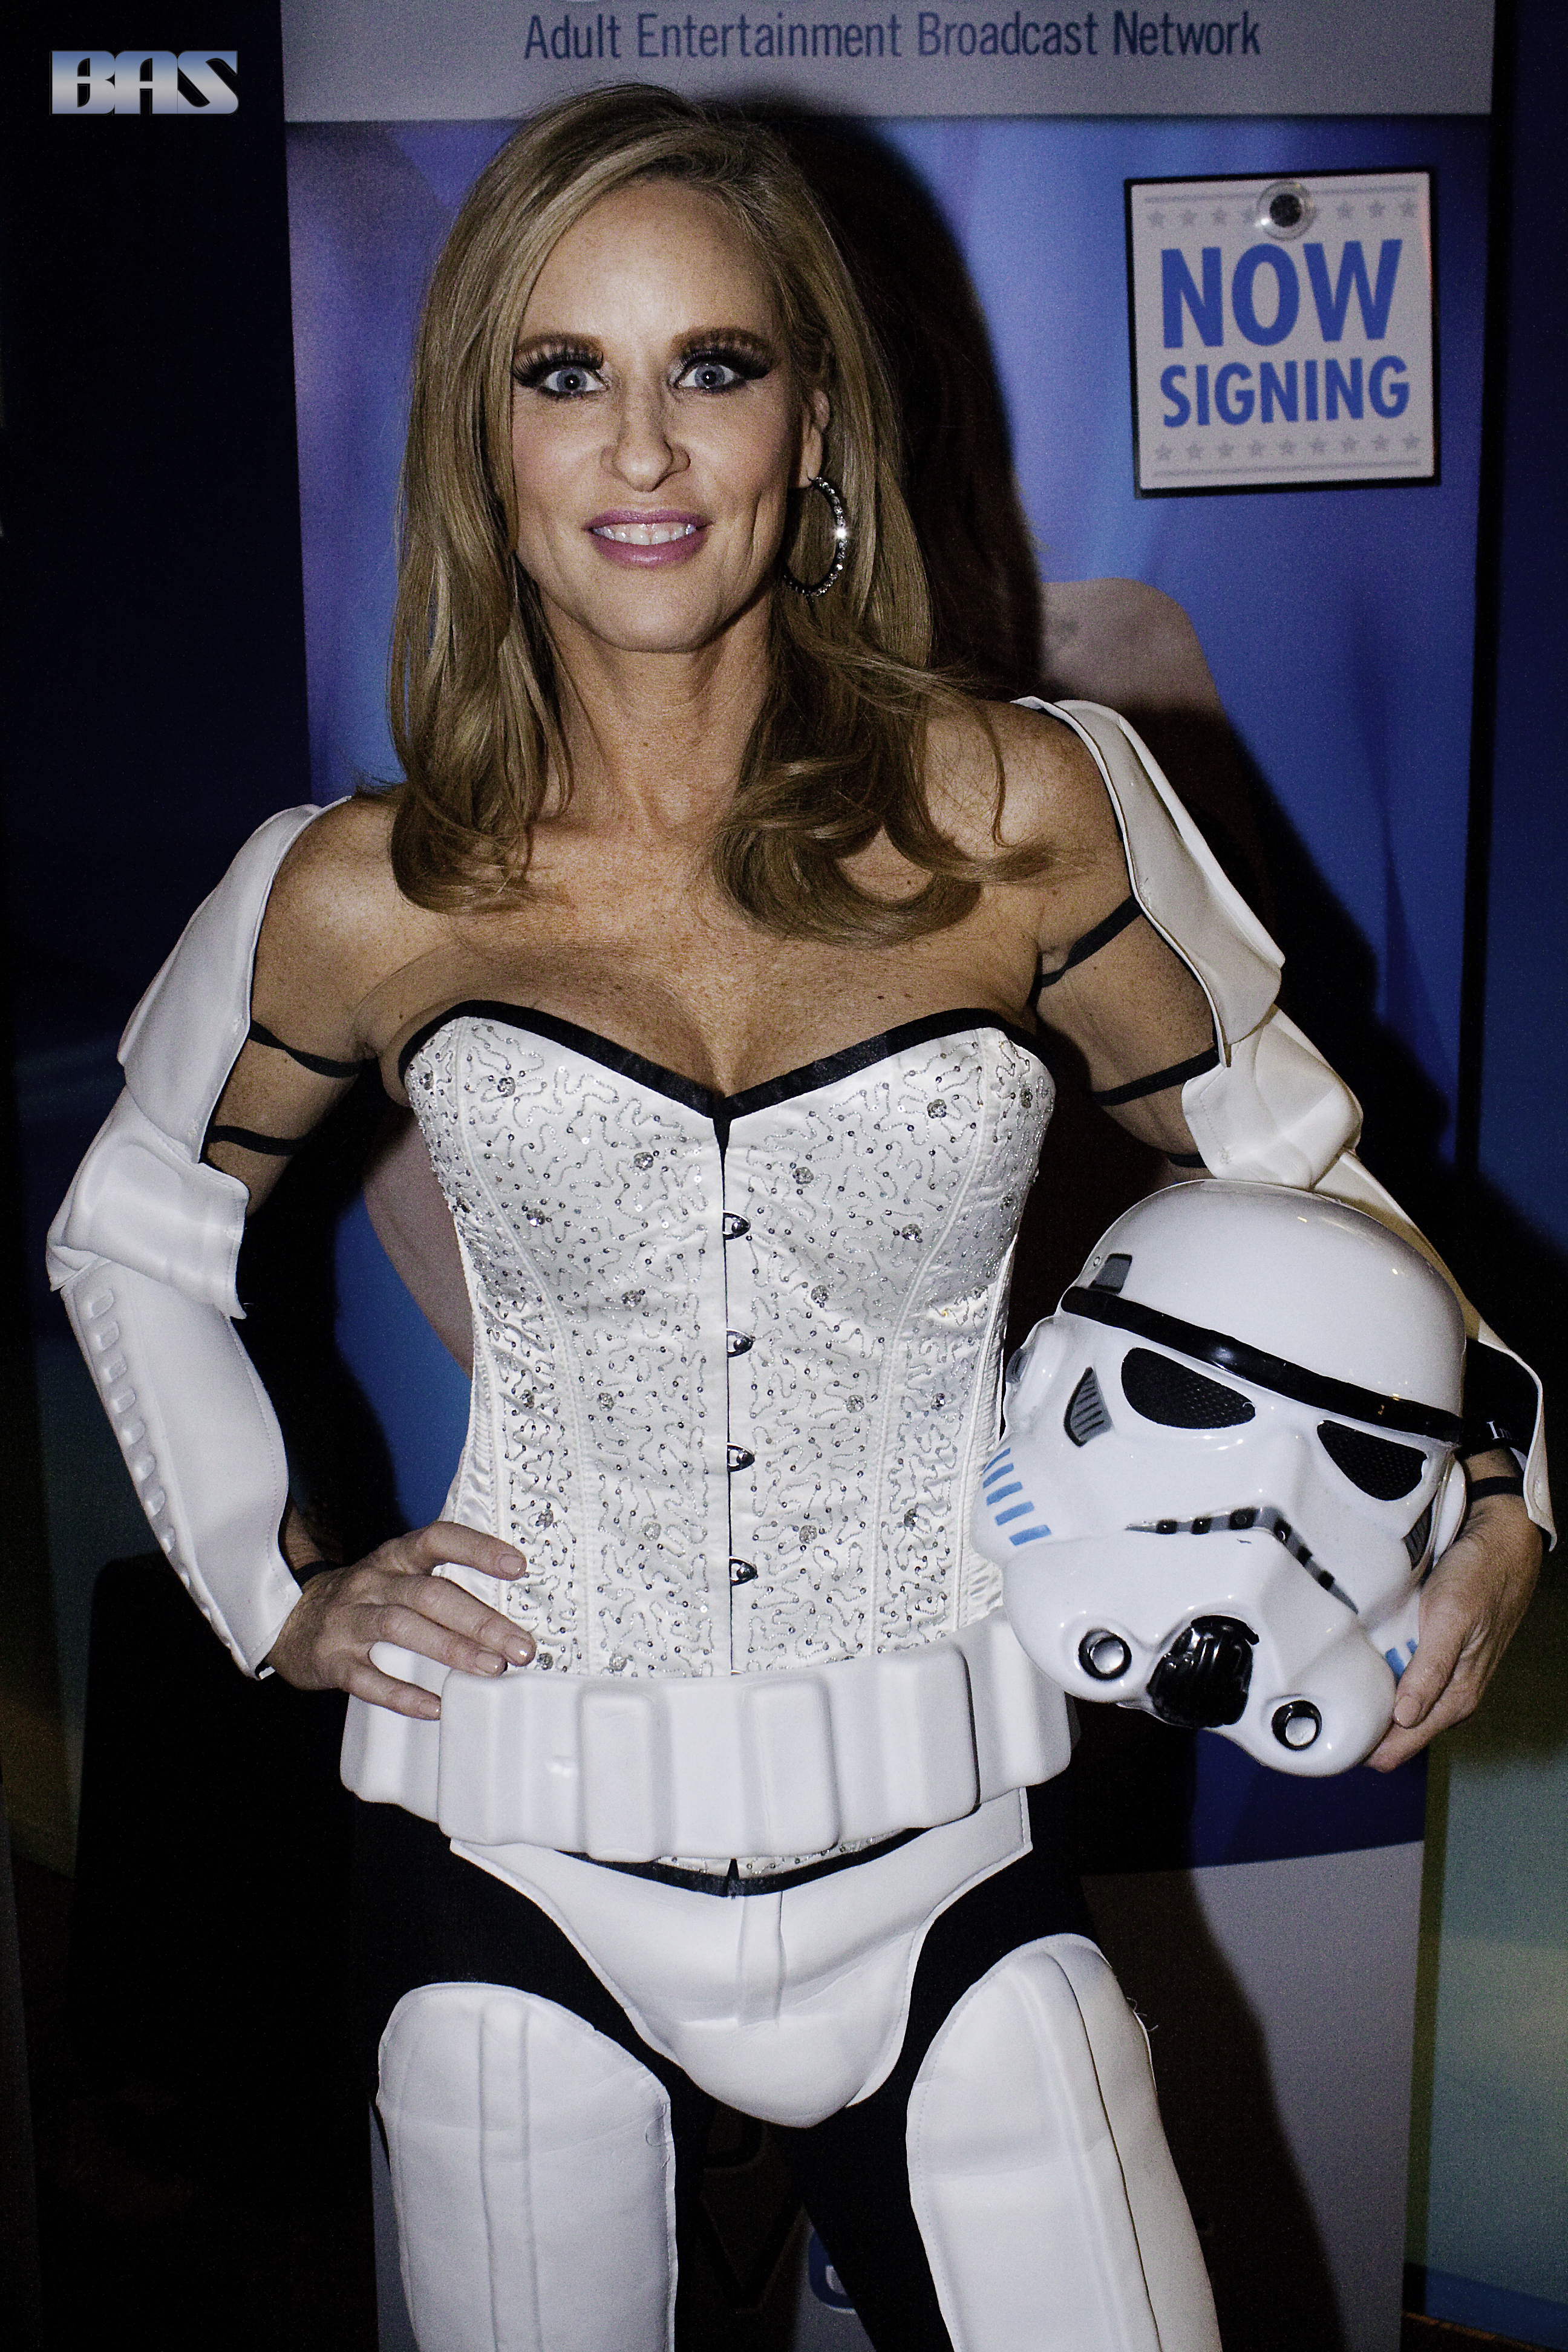 Jodi_West_as_a_Stormtrooper_at_AVN_Adult_Entertainment_Expo_2016_(25571802861)